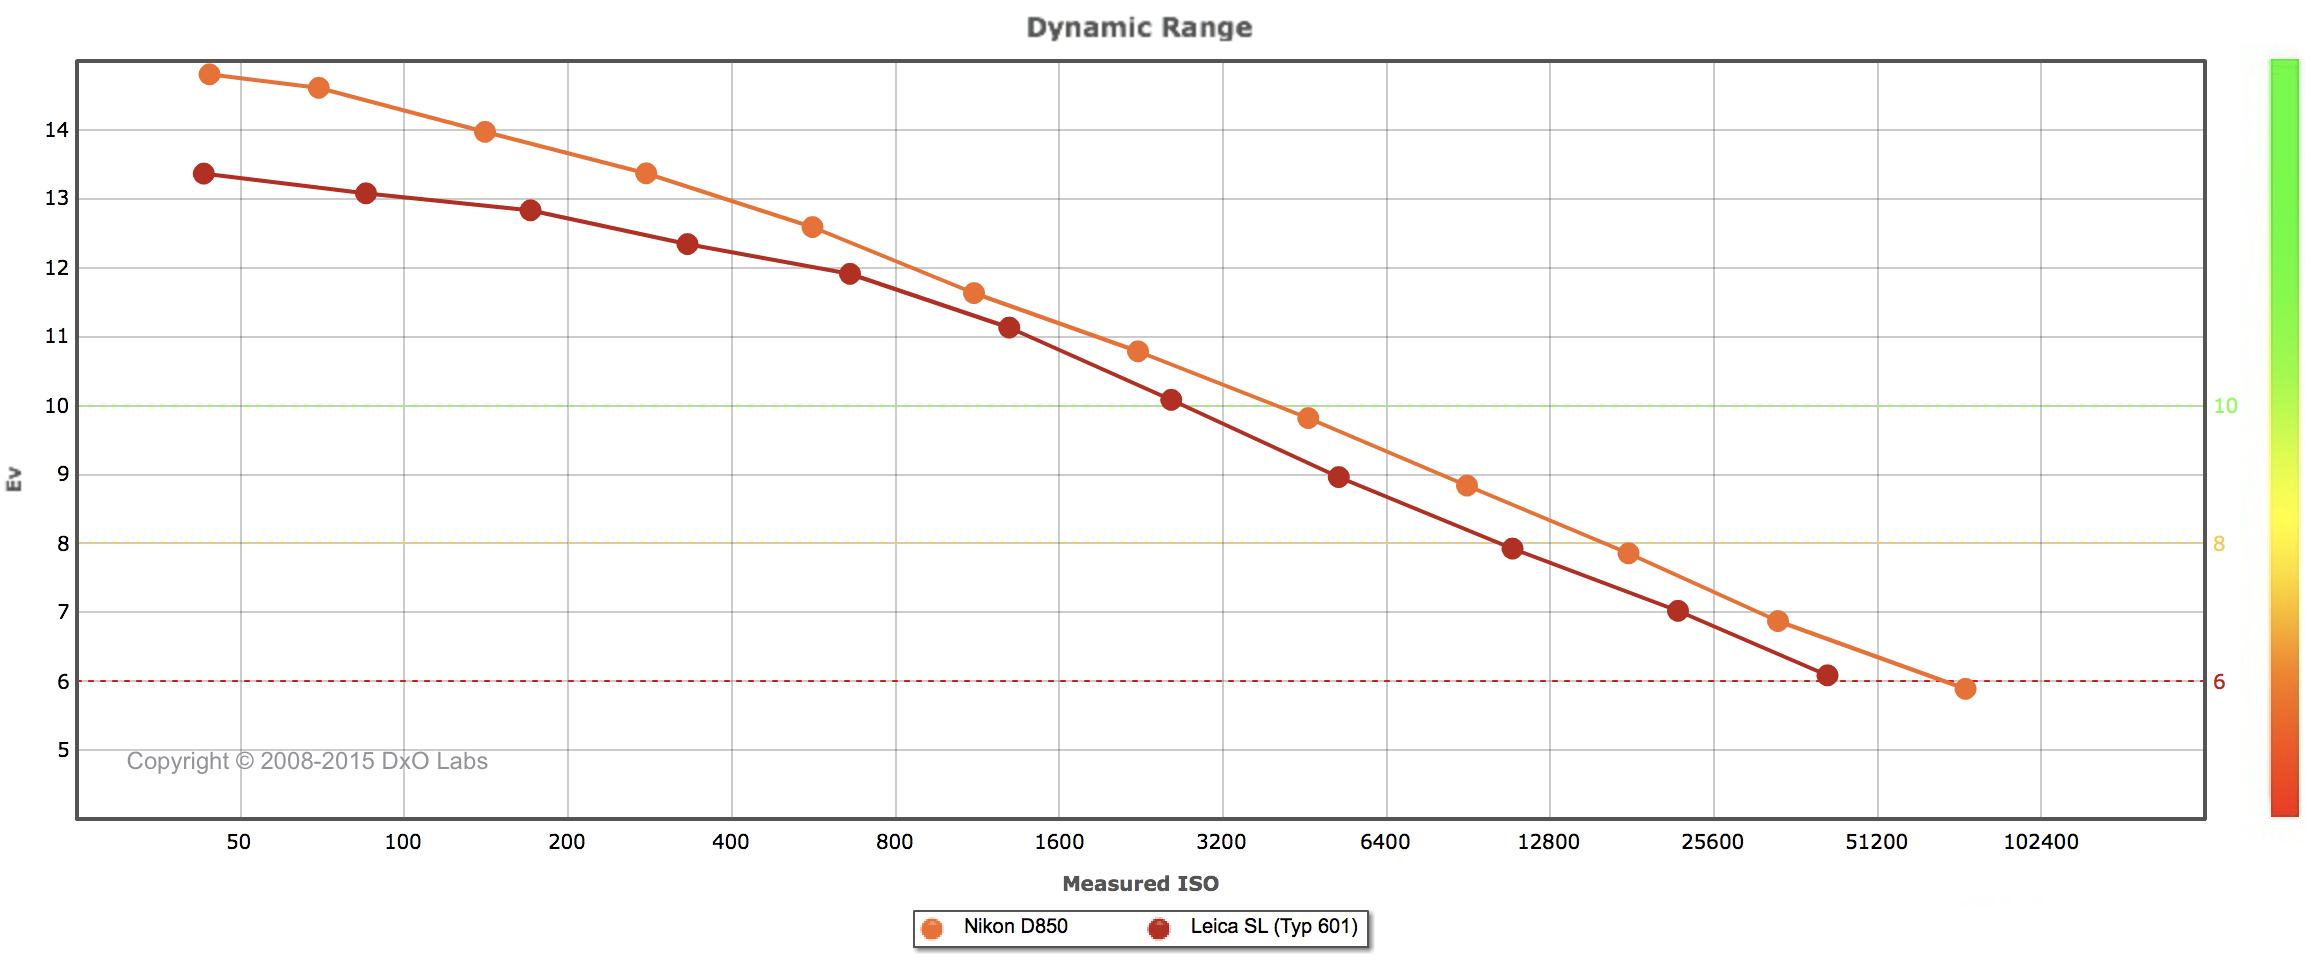 Sensor testing by DXO Labs shows the superior dynamics range of the Nikon D850